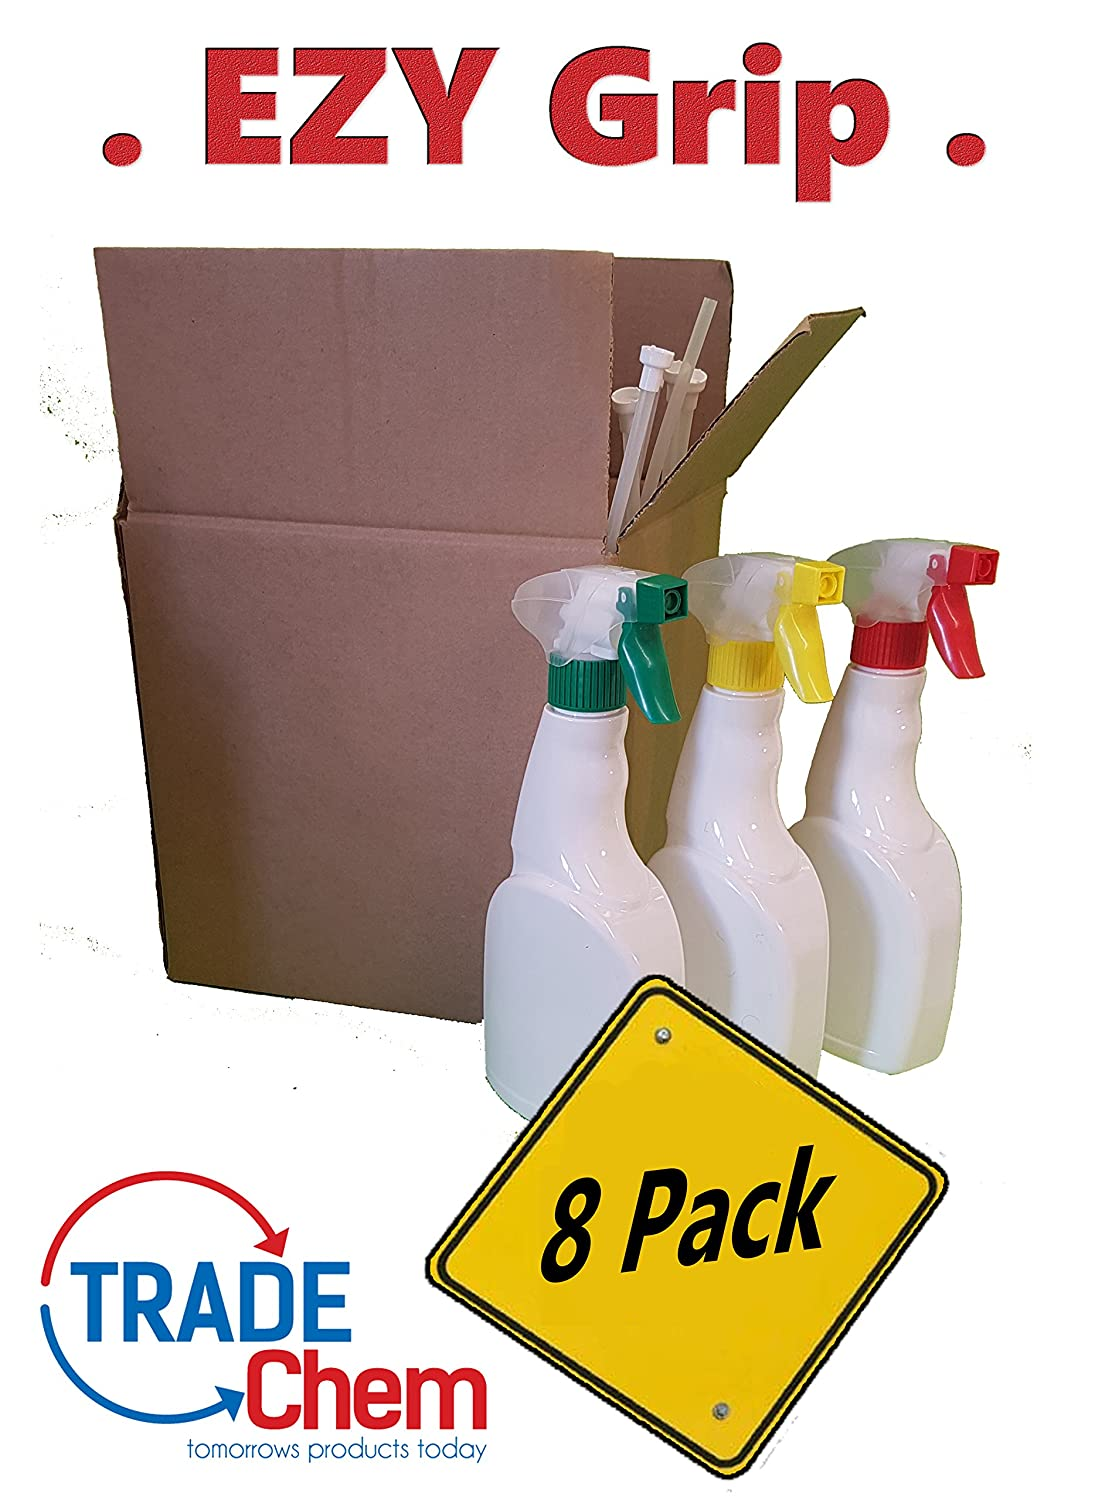 8 PACK EZY Grip 500ml Trigger Spray White Bottles - Mixed Head Colour Trade Chemicals TCEZY